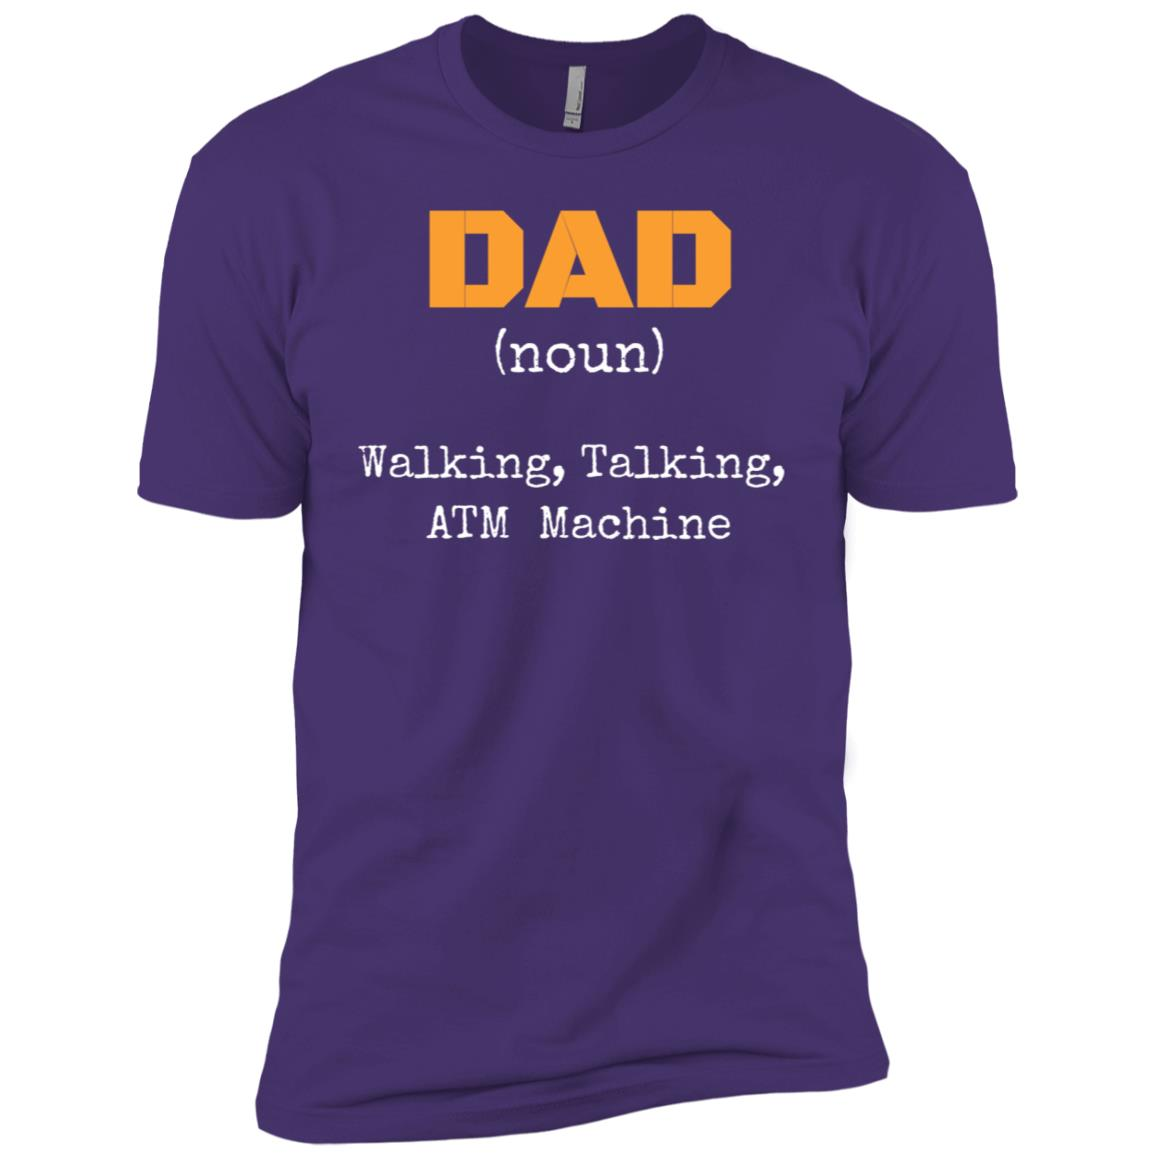 Dad Definition Tee Joke for Dad from Son or Daughter Men Short Sleeve T-Shirt